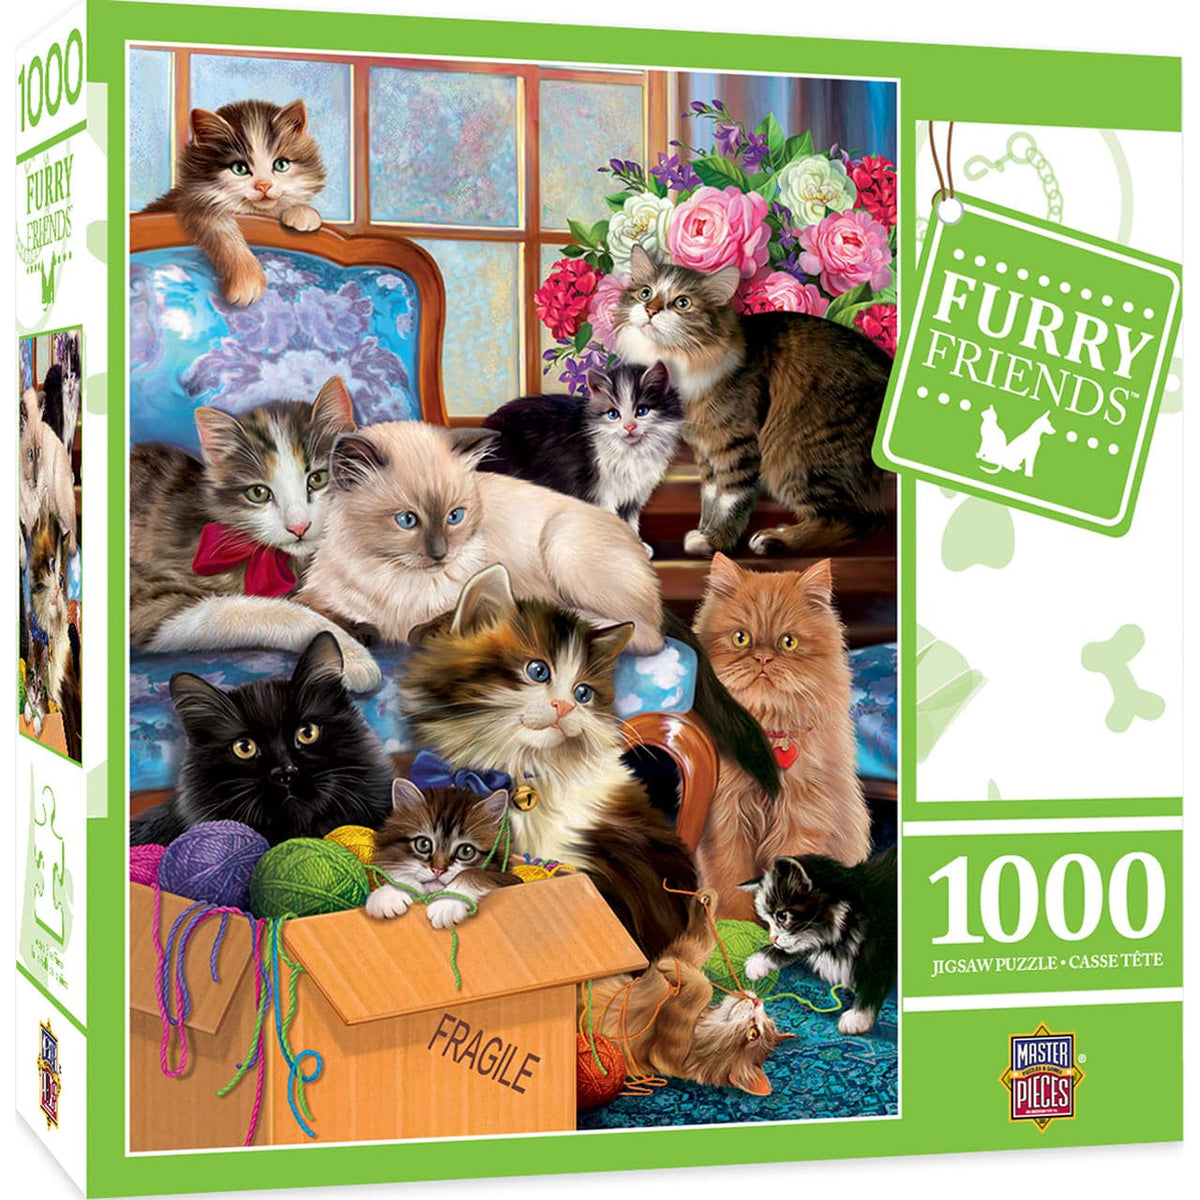 Furry Friends - Trouble Makers - 1,000 Piece Puzzle